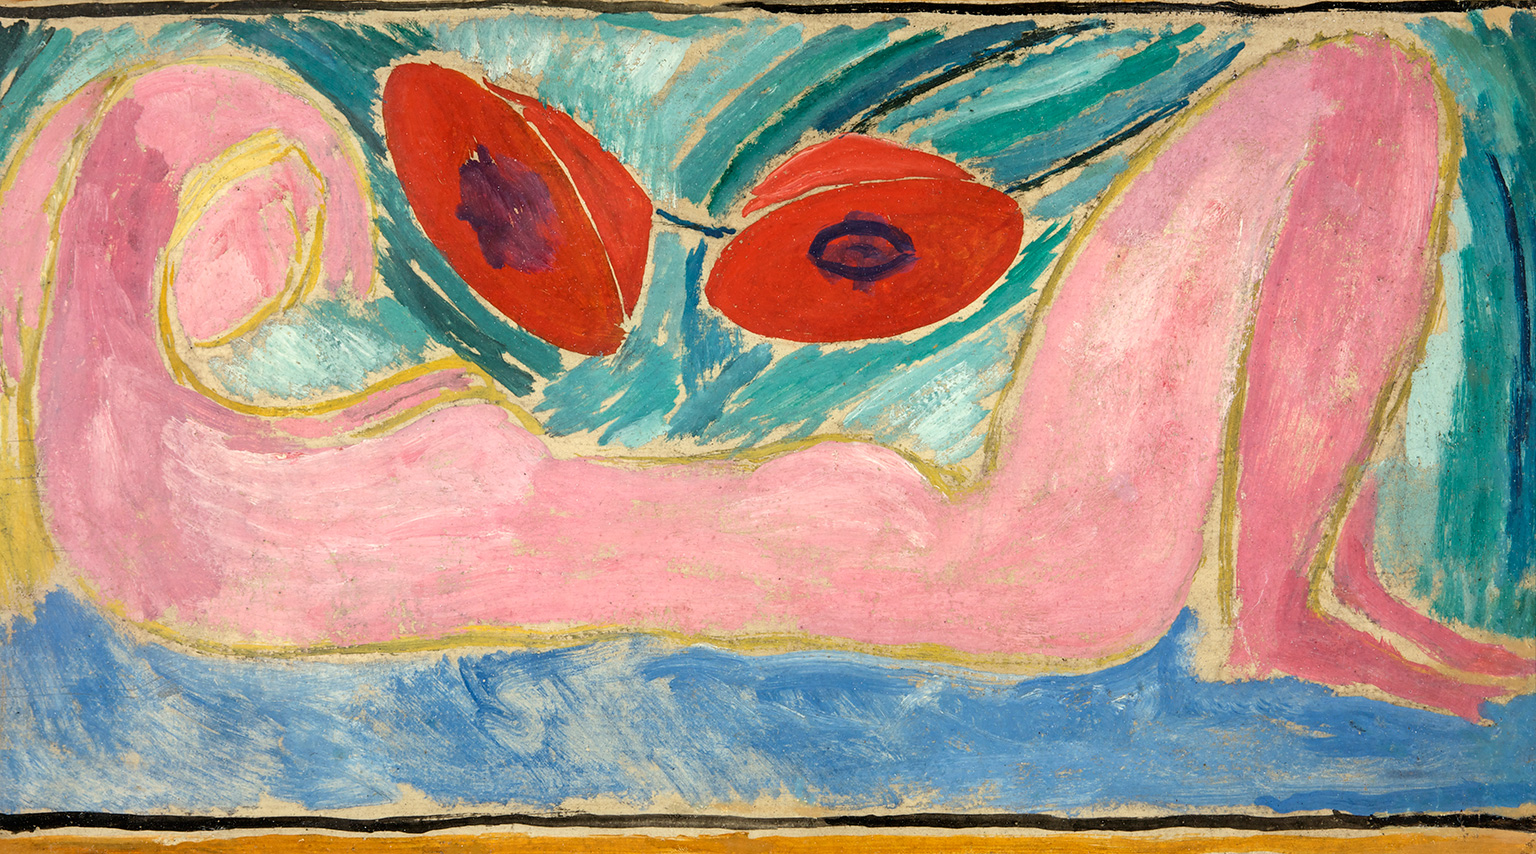 Vanessa Bell, Nude with Poppies, 1916